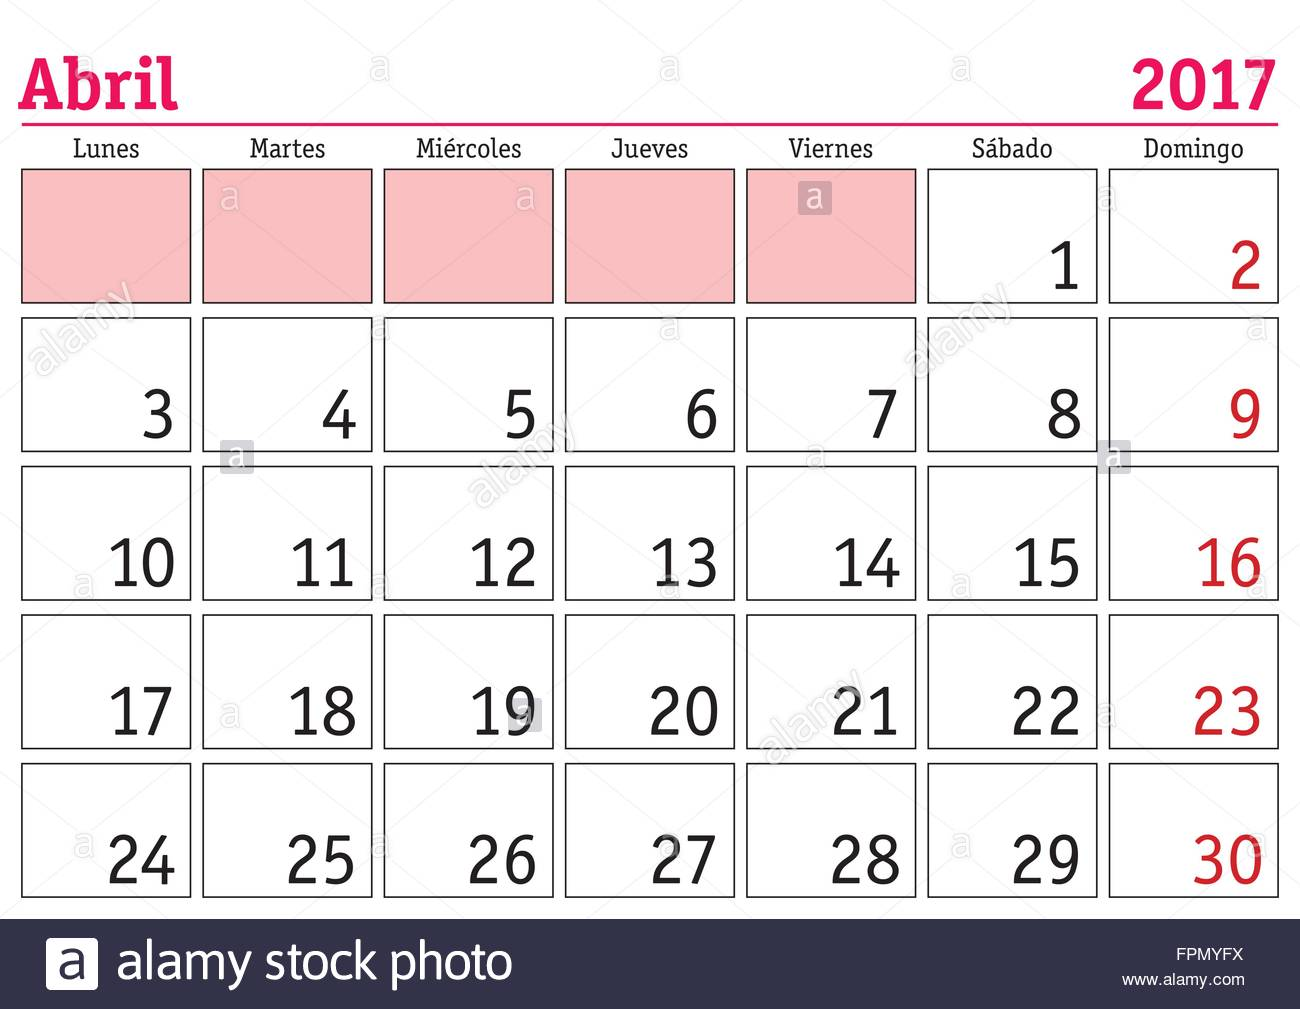 April Month In A Year 2017 Wall Calendar In Spanish. Abril 2017 Stock ...